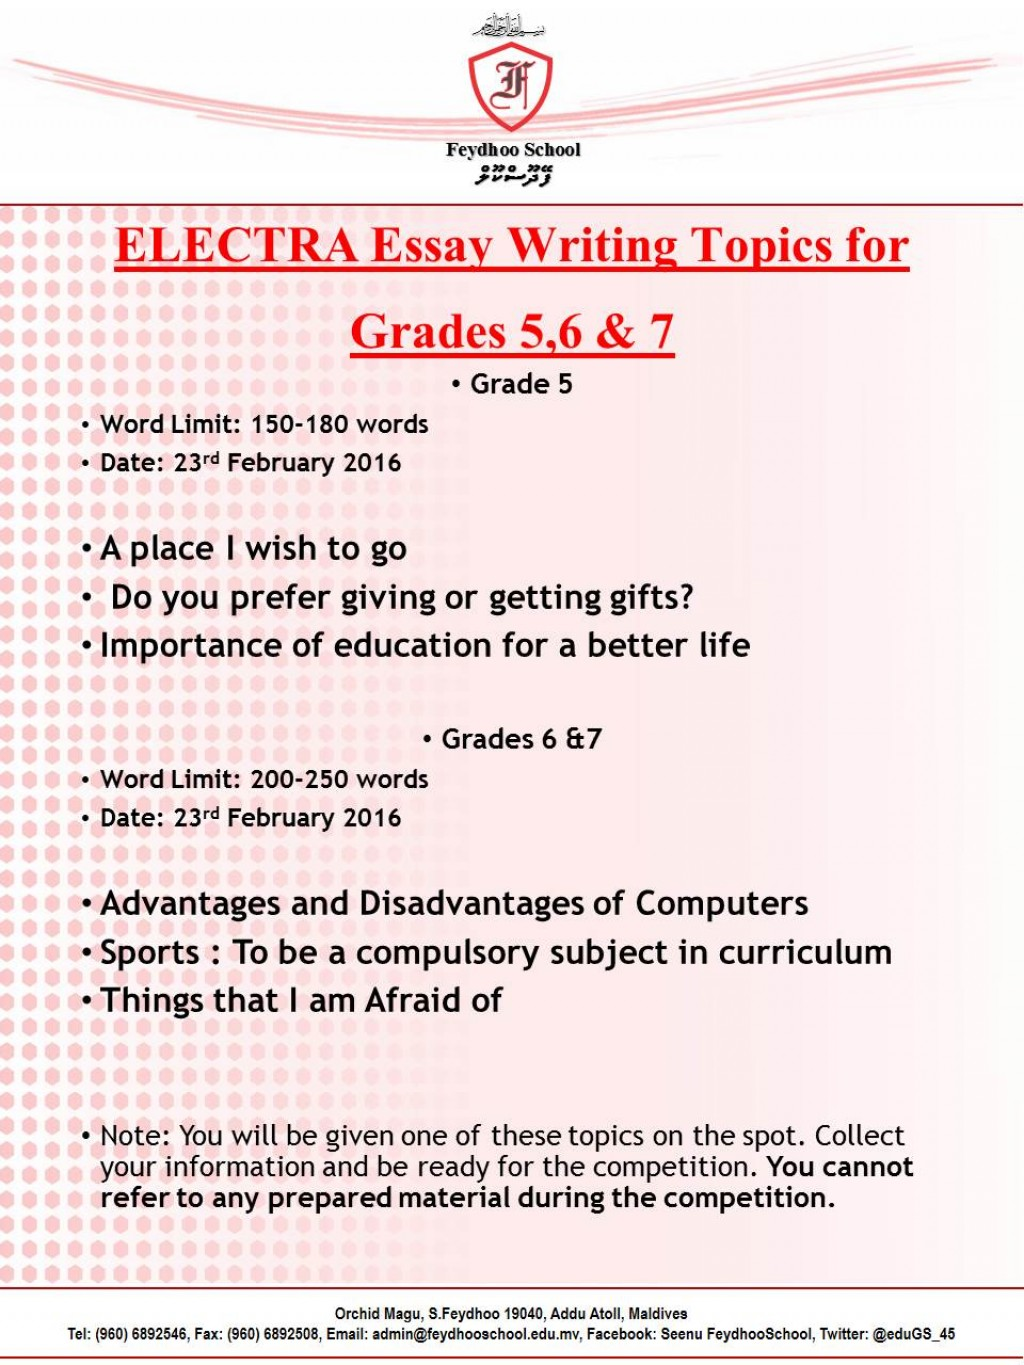 003 Essay Example Topics For Grade Marvelous 5 English Writing Tips Large